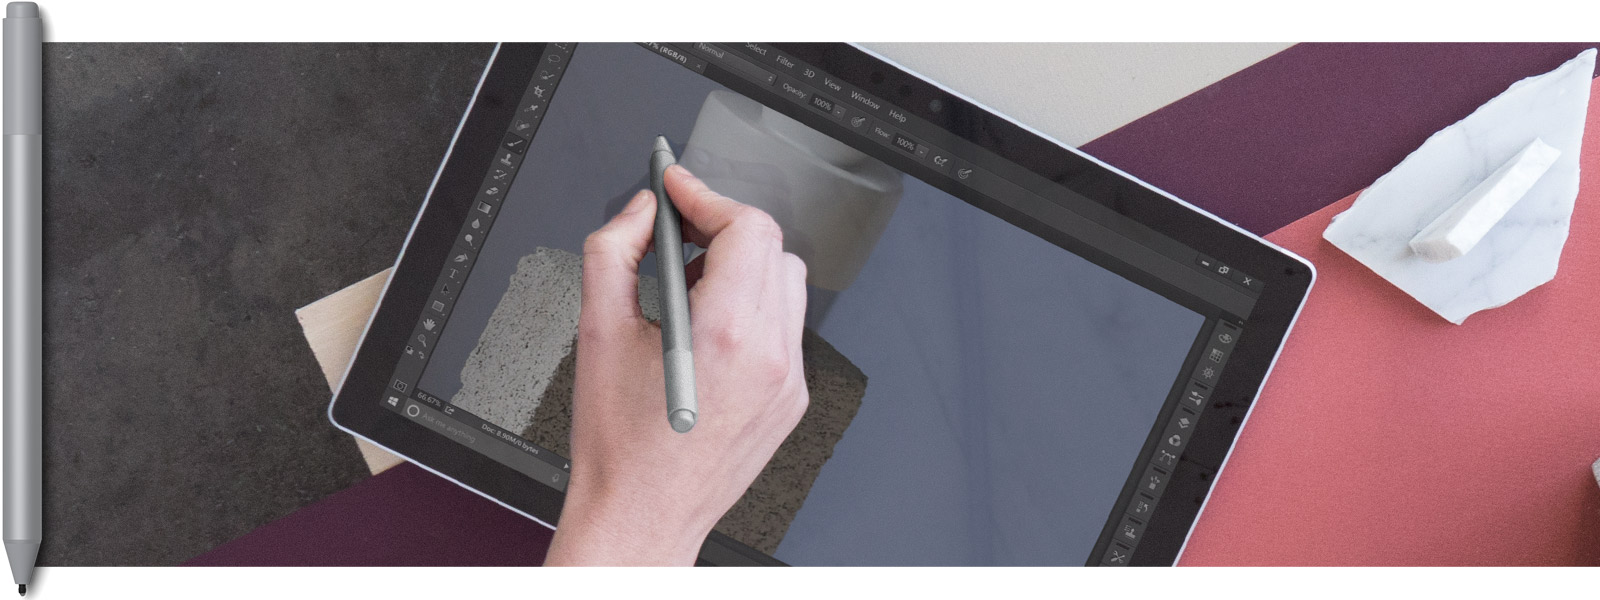 PERSON USING SURFACE AS TABLET WITH PEN AND TOUCH.